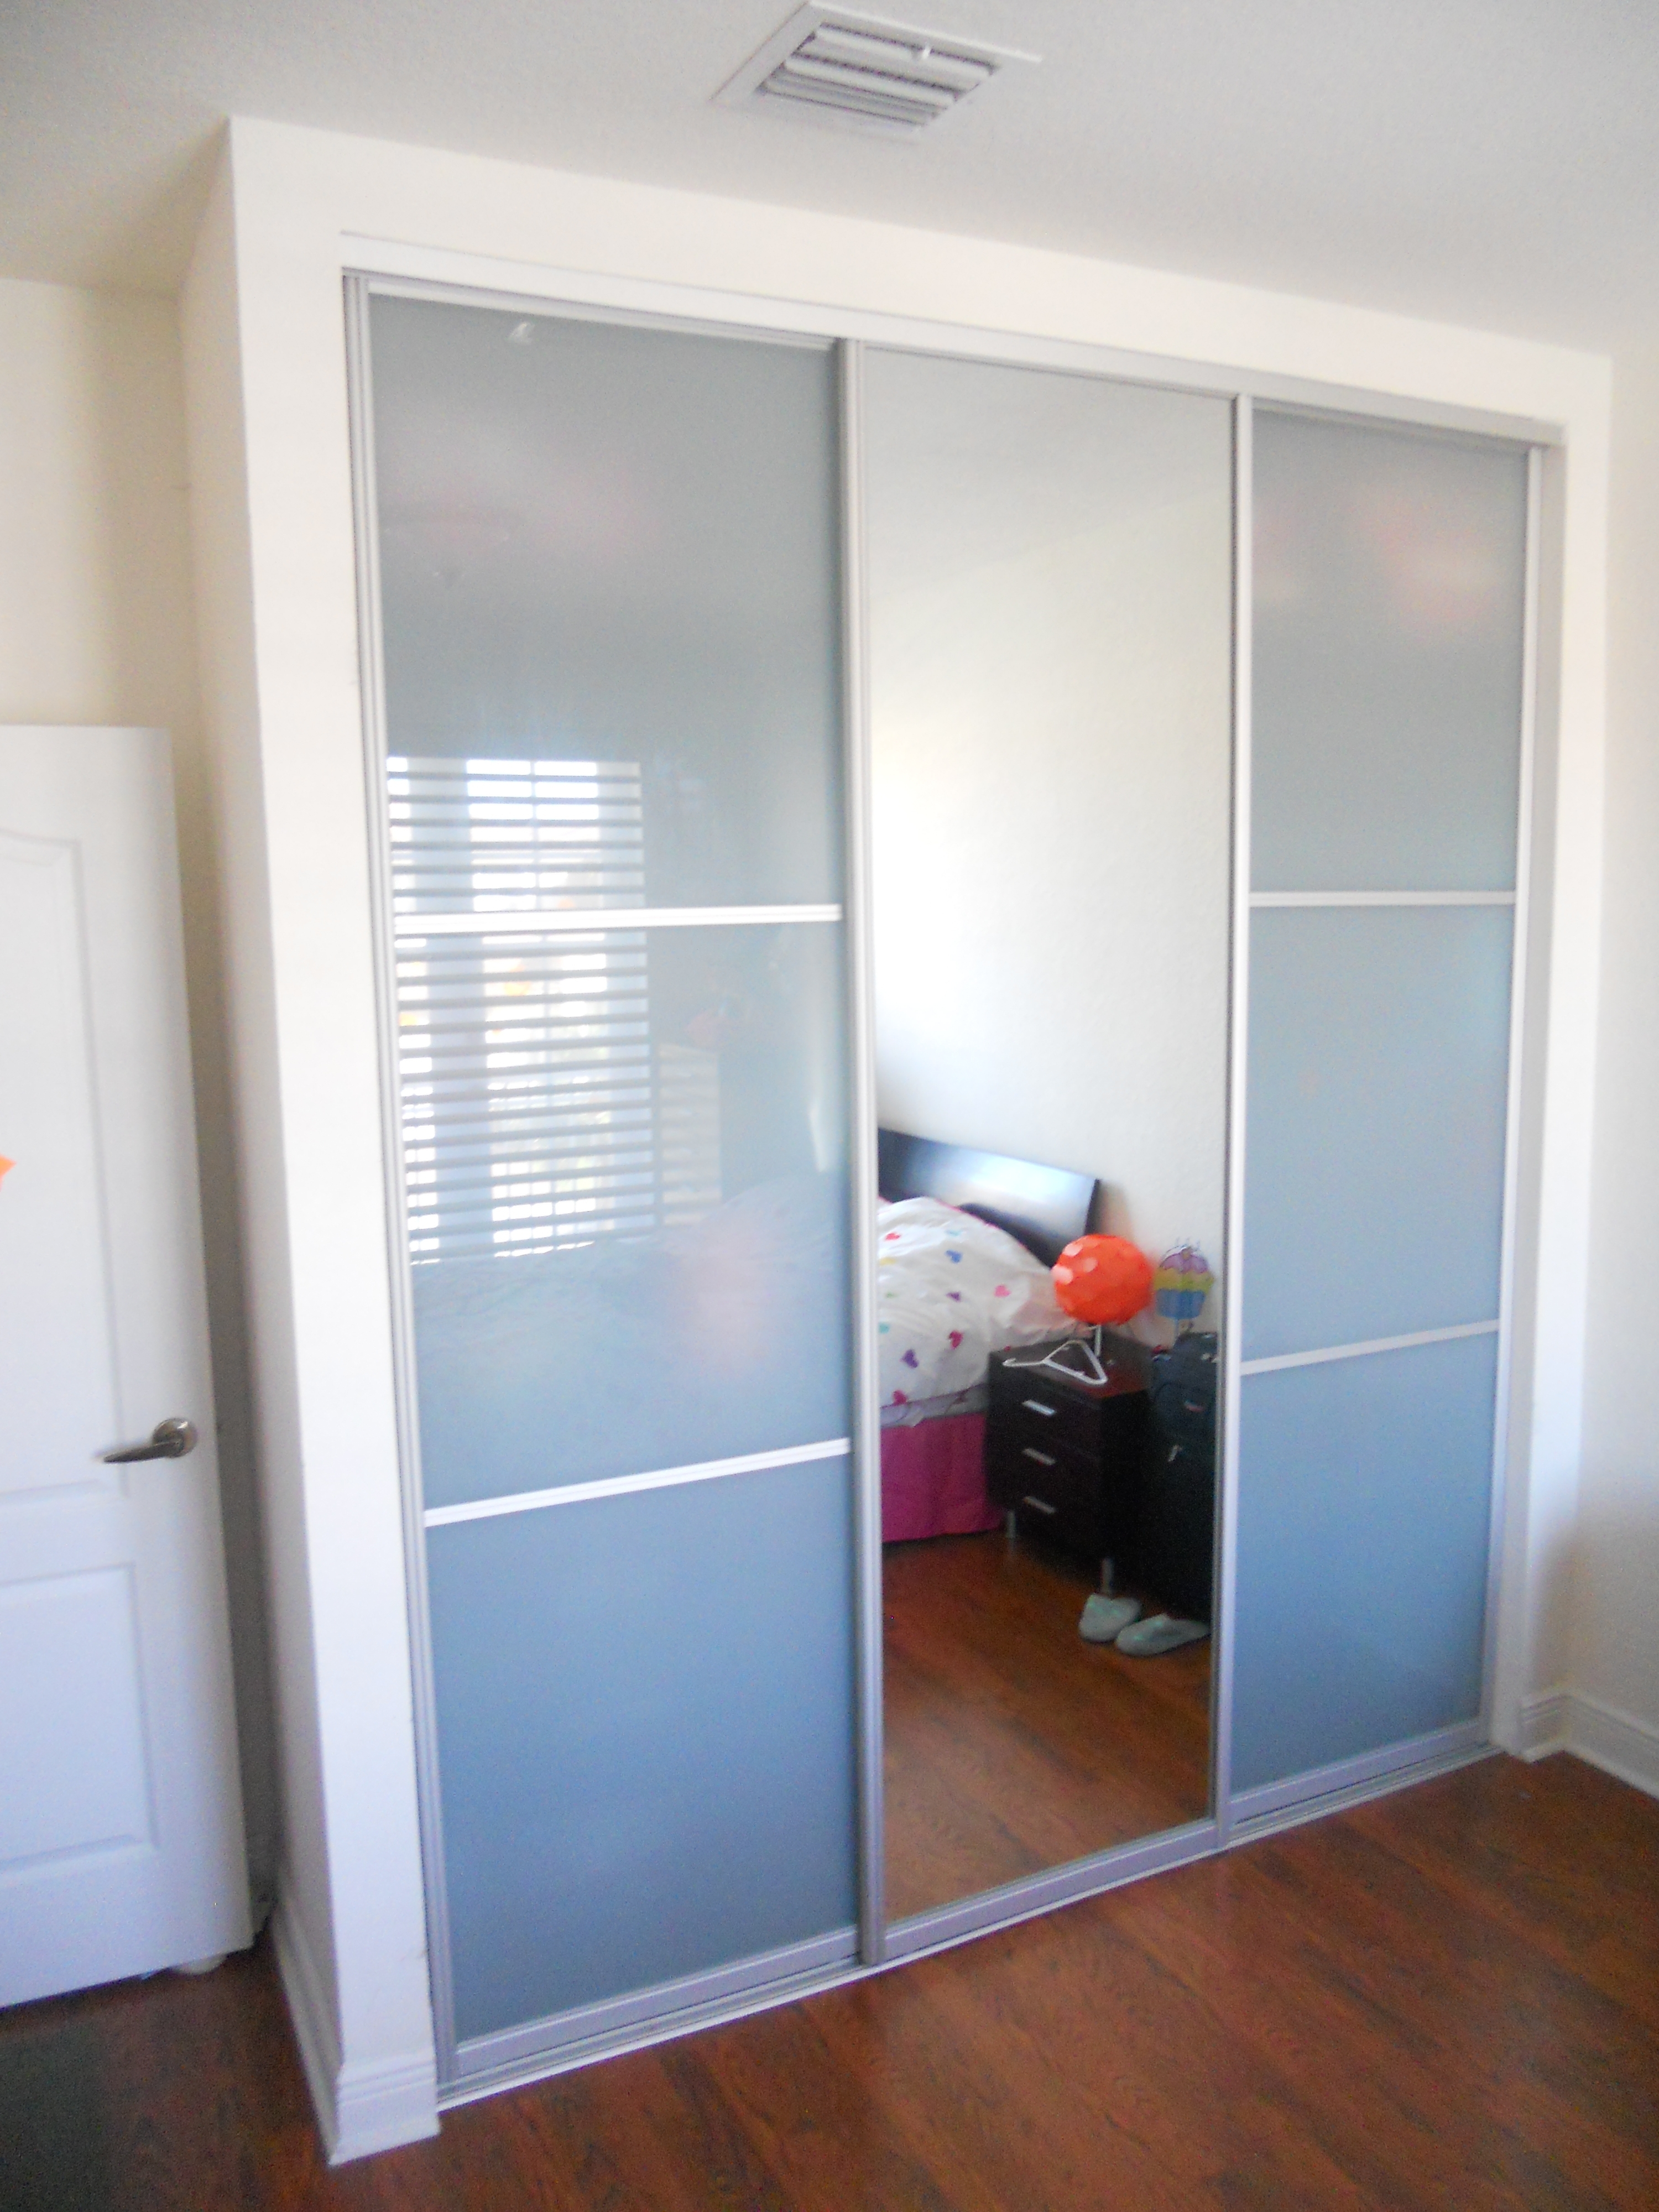 Permalink to 96 Tall Bypass Closet Doors